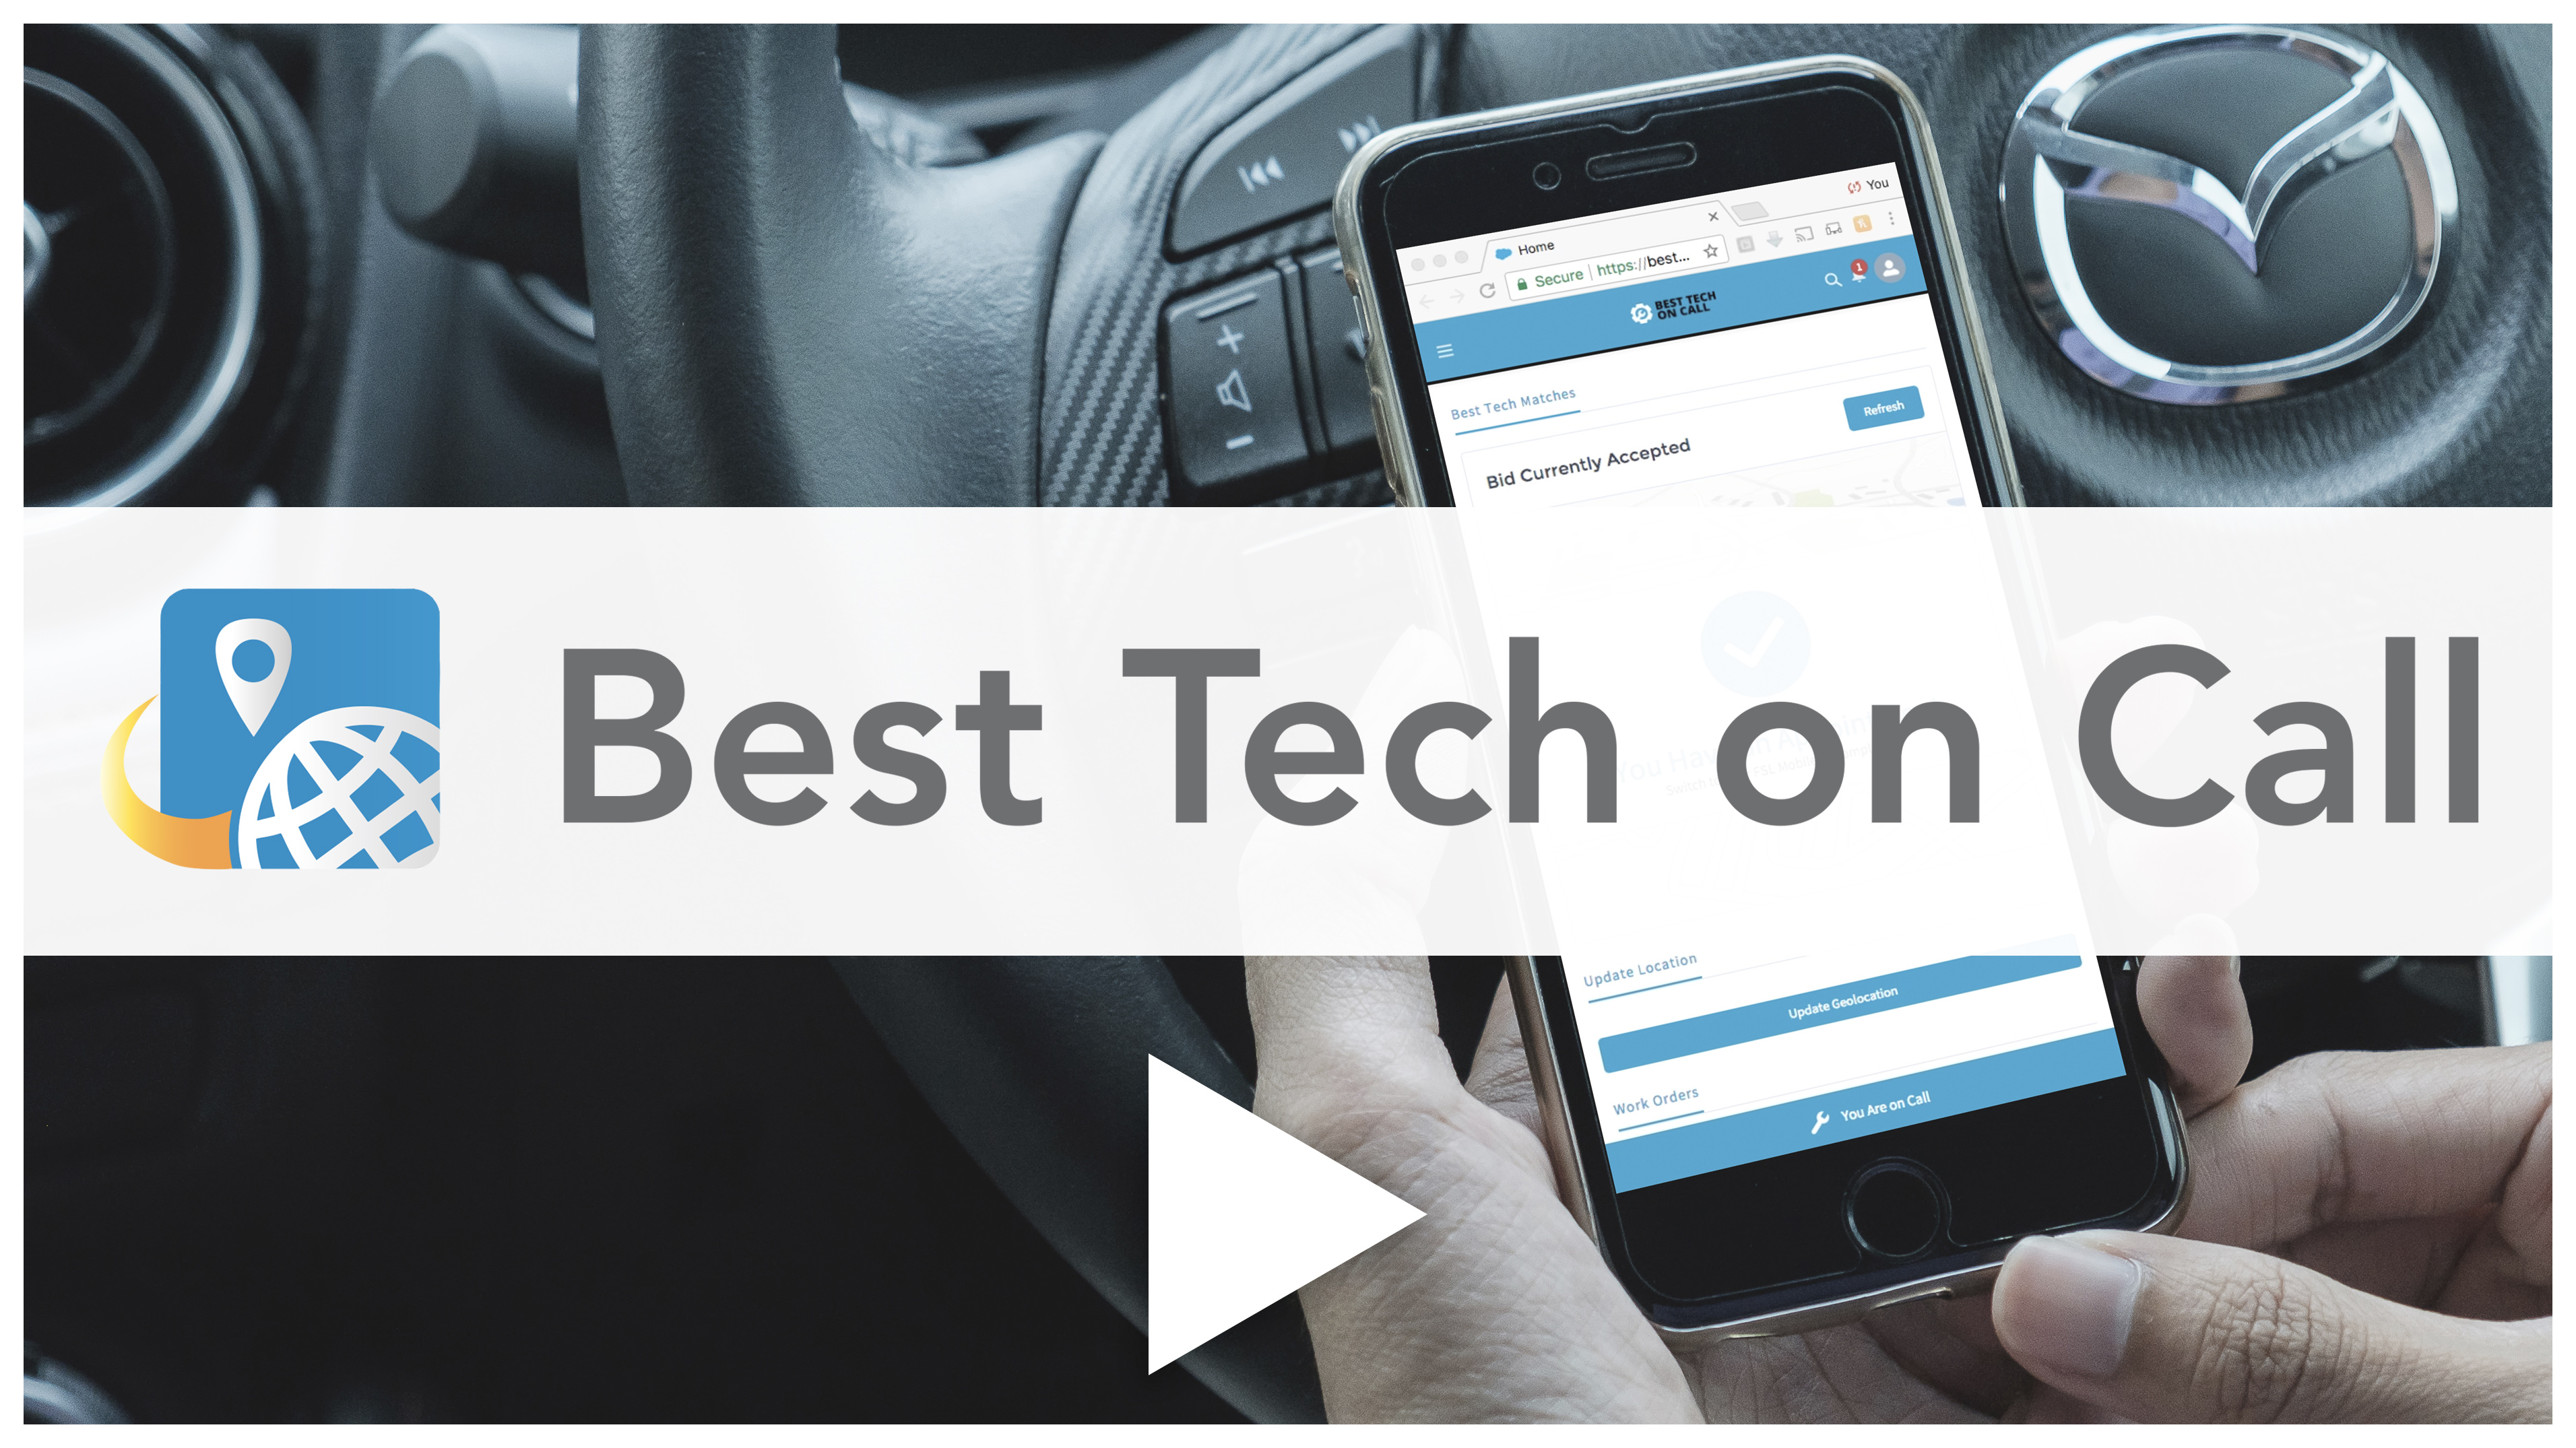 Play Best Tech on Call Video